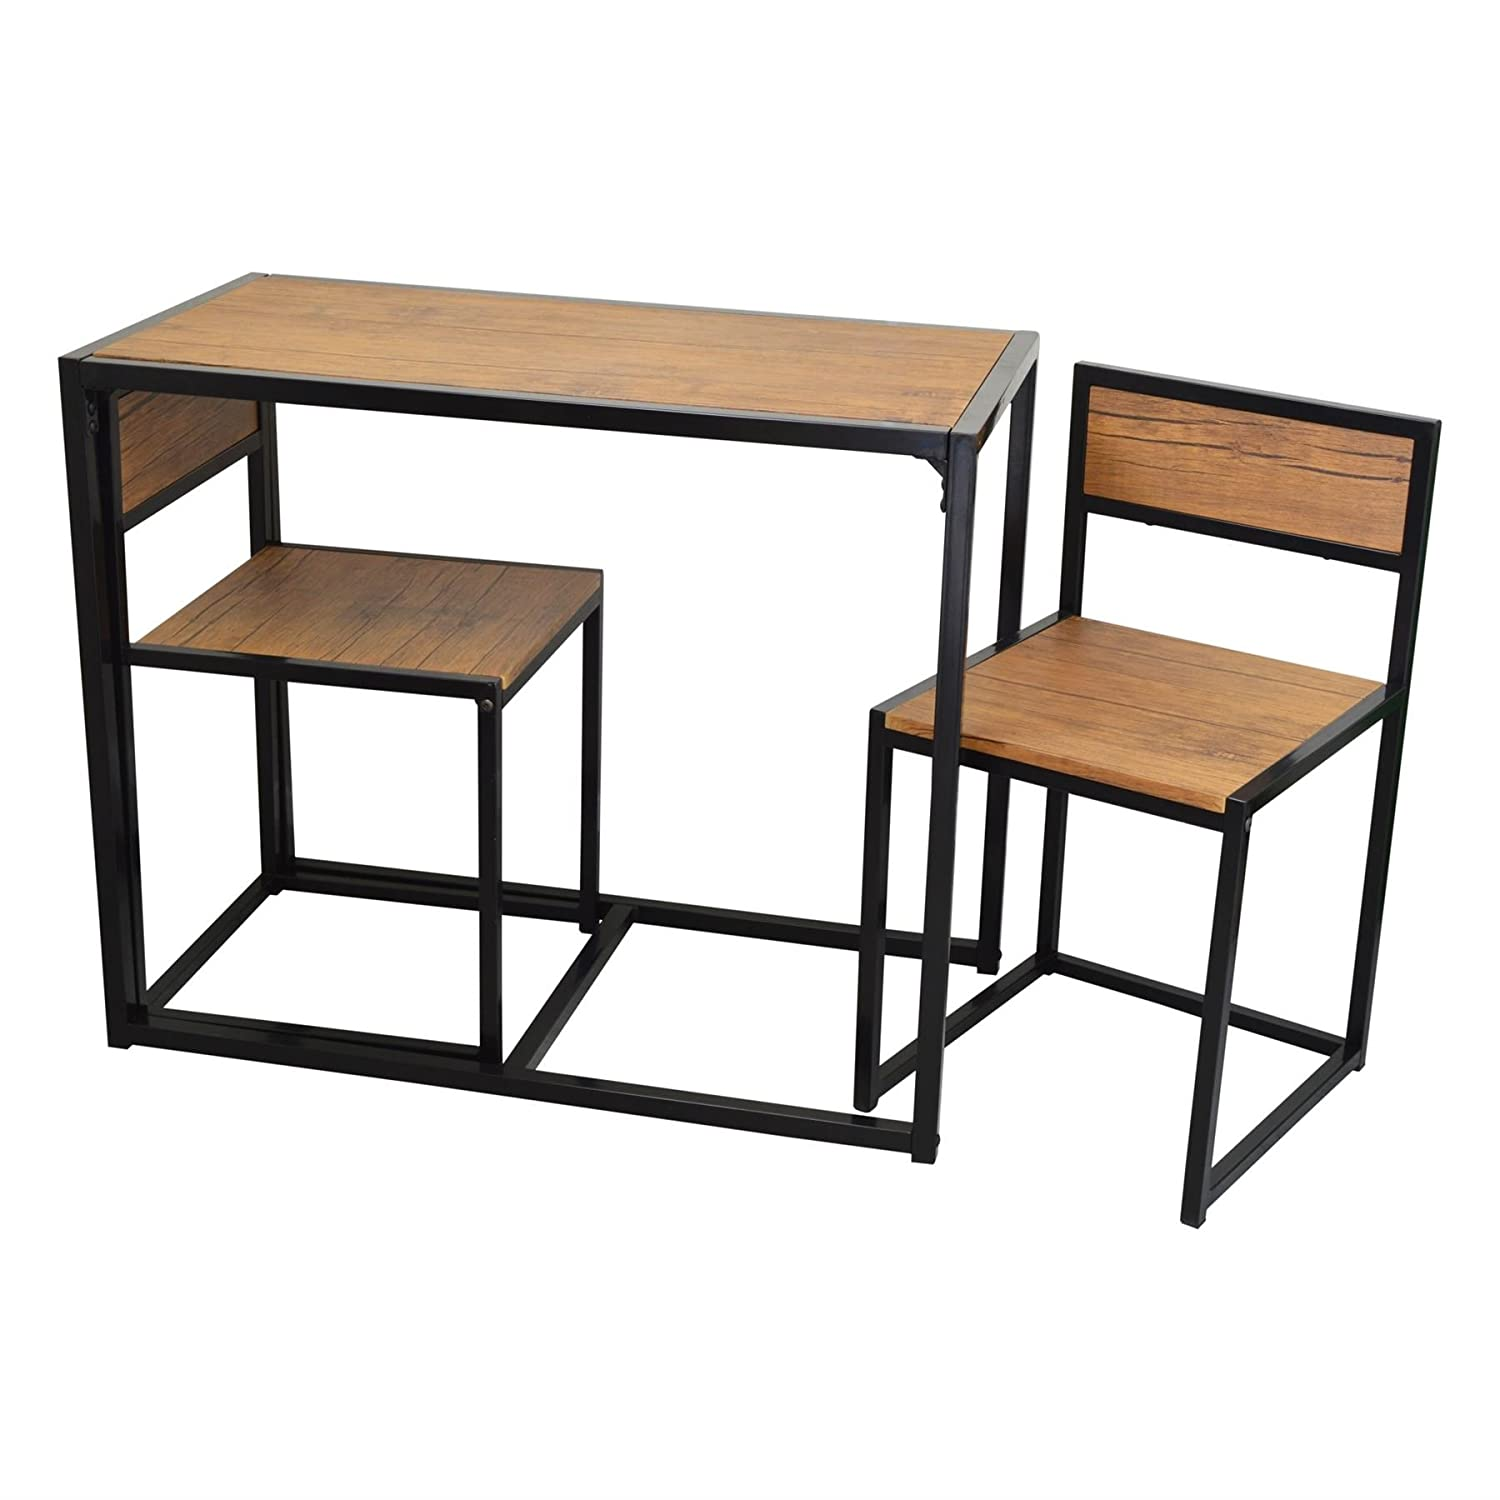 Dining Table And 2 Chairs Set Small Kitchen Space Saver